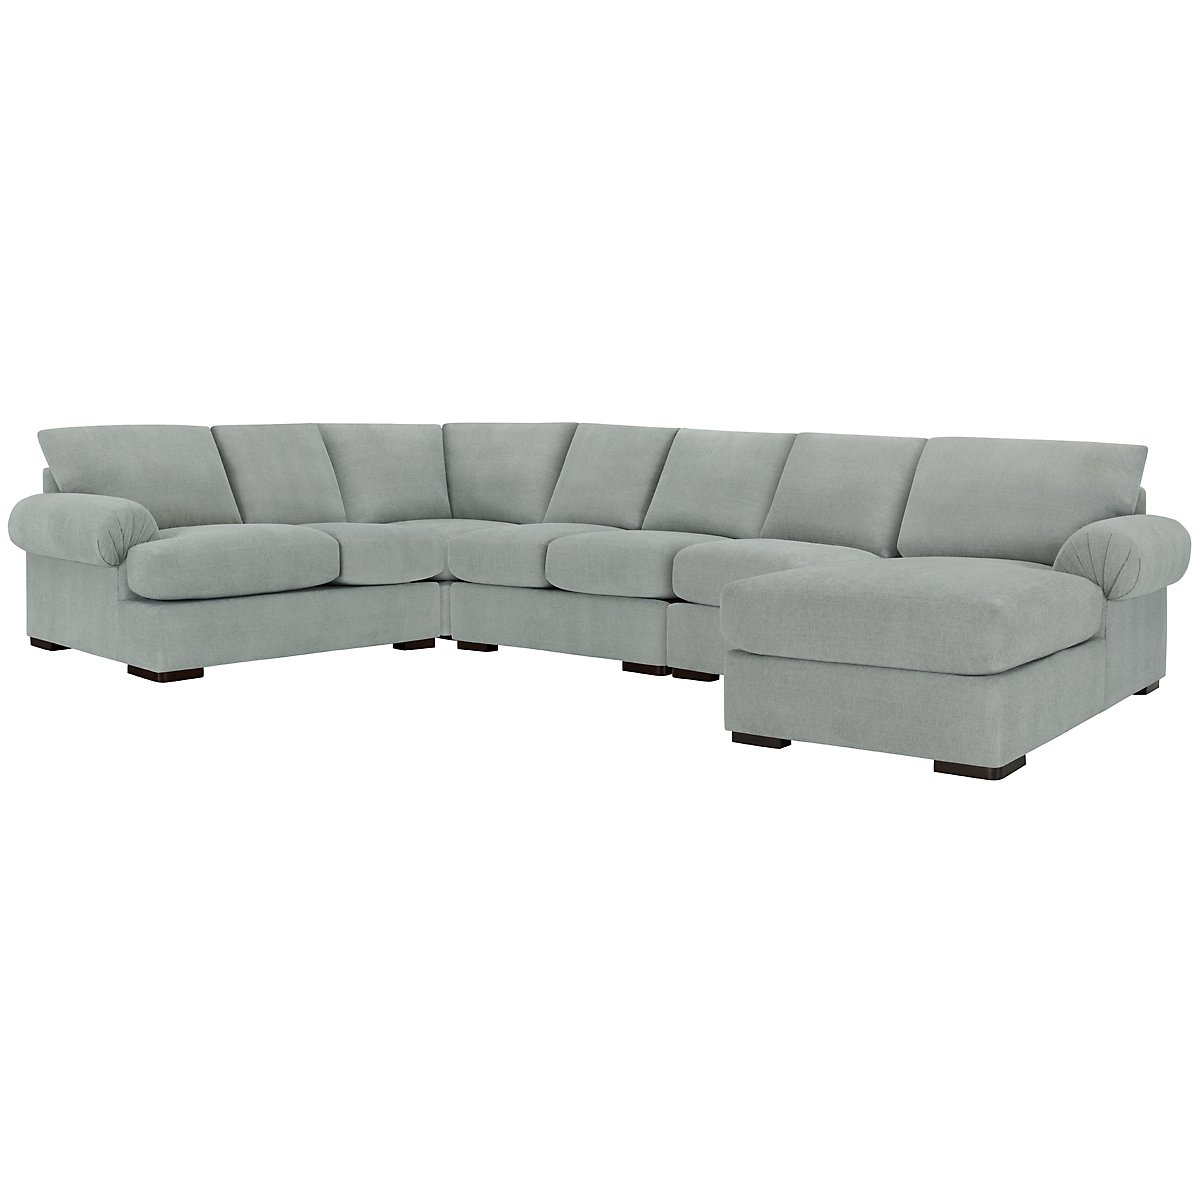 Belair Light Blue Fabric Large Right Chaise Sectional